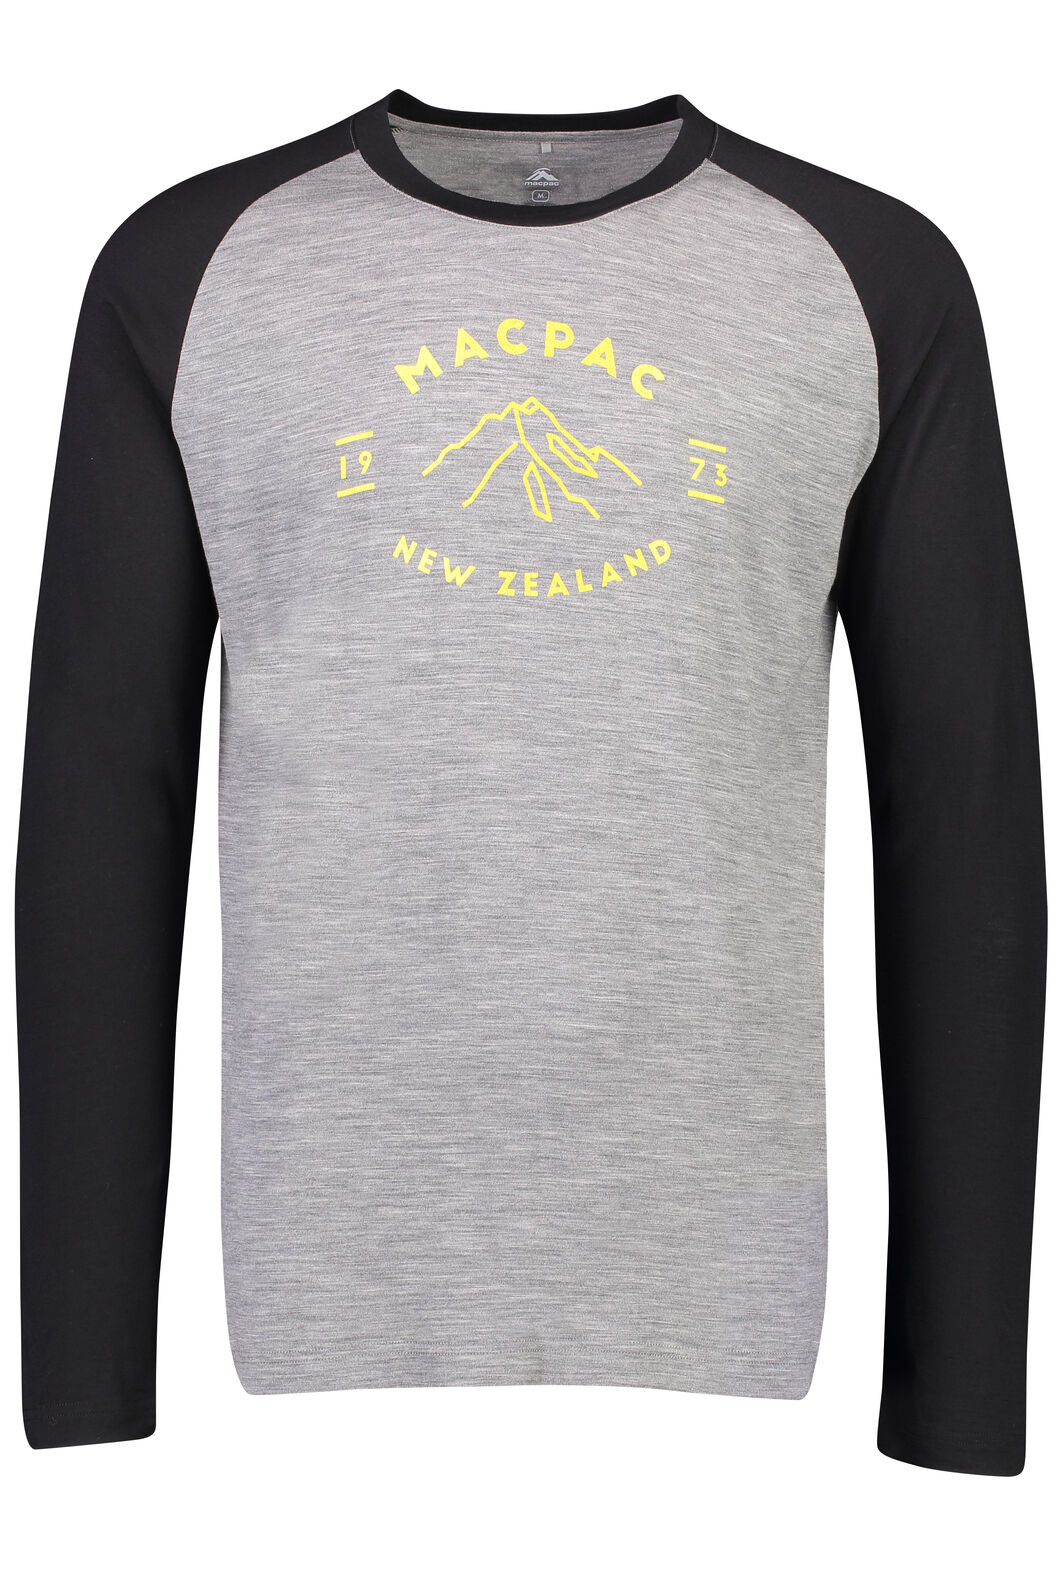 Macpac Mountain Merino 180 Long Sleeve Crew - Men's, Monument, hi-res